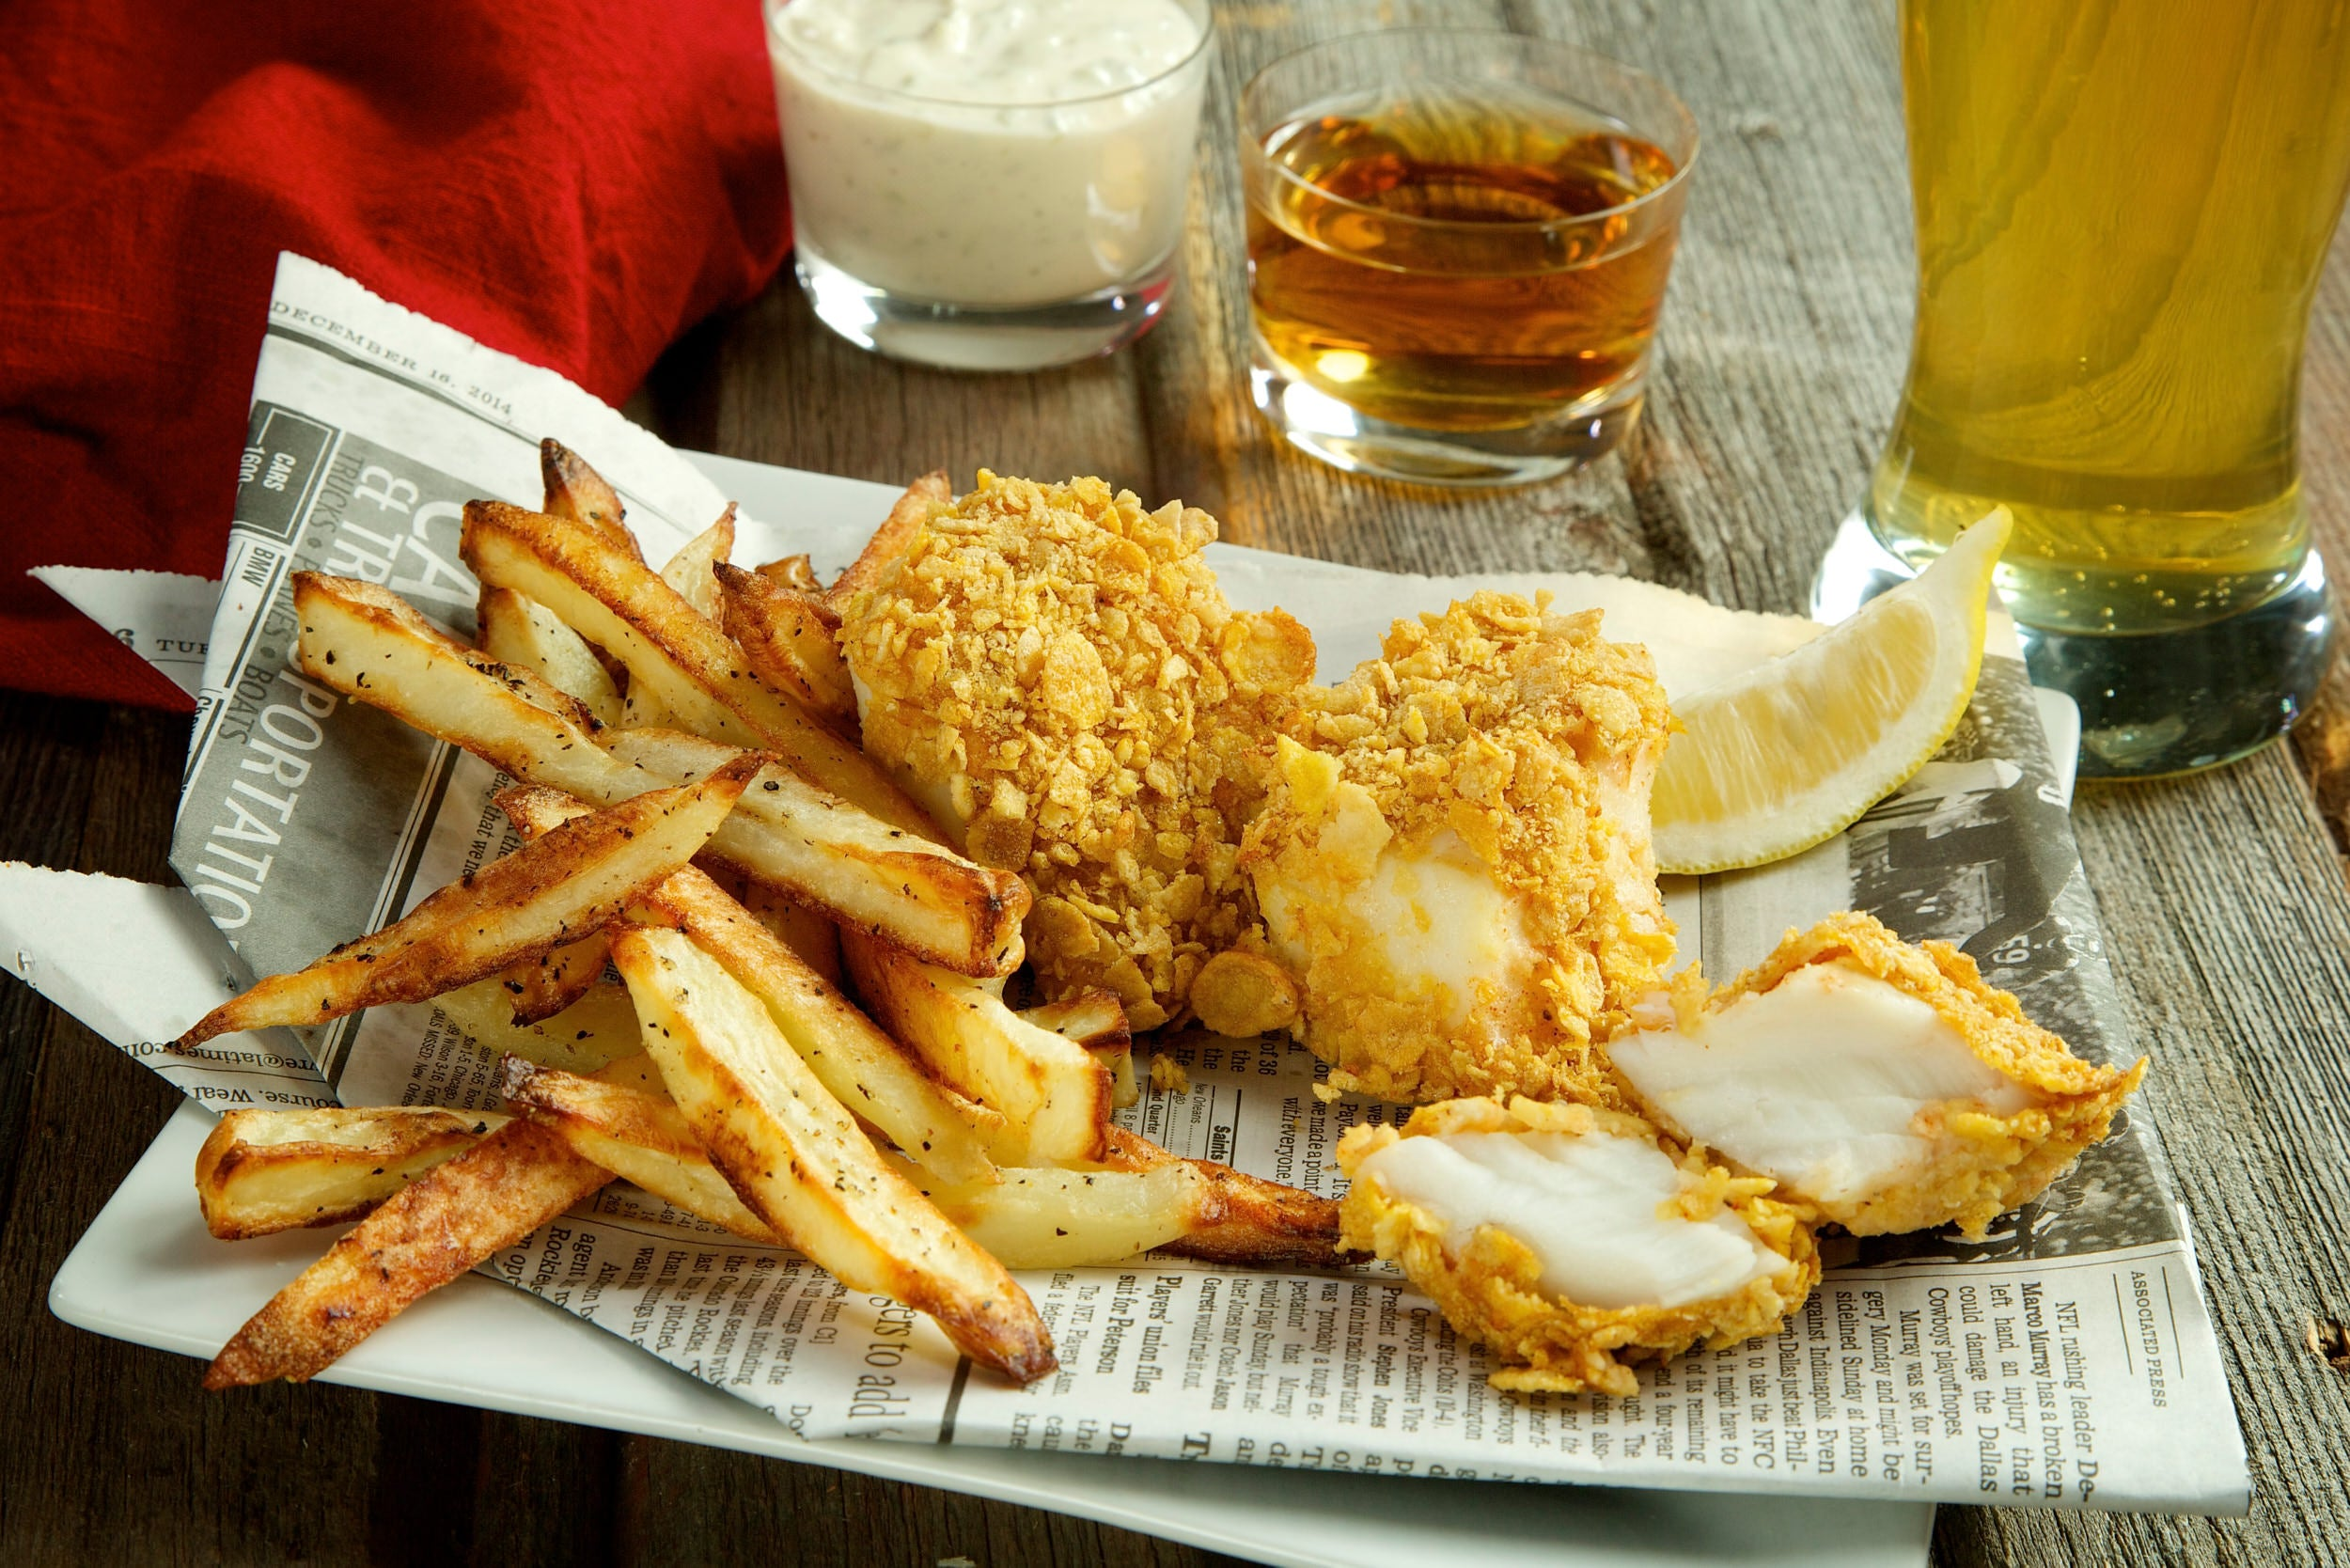 Baked fish and chips for Baked fish and chips